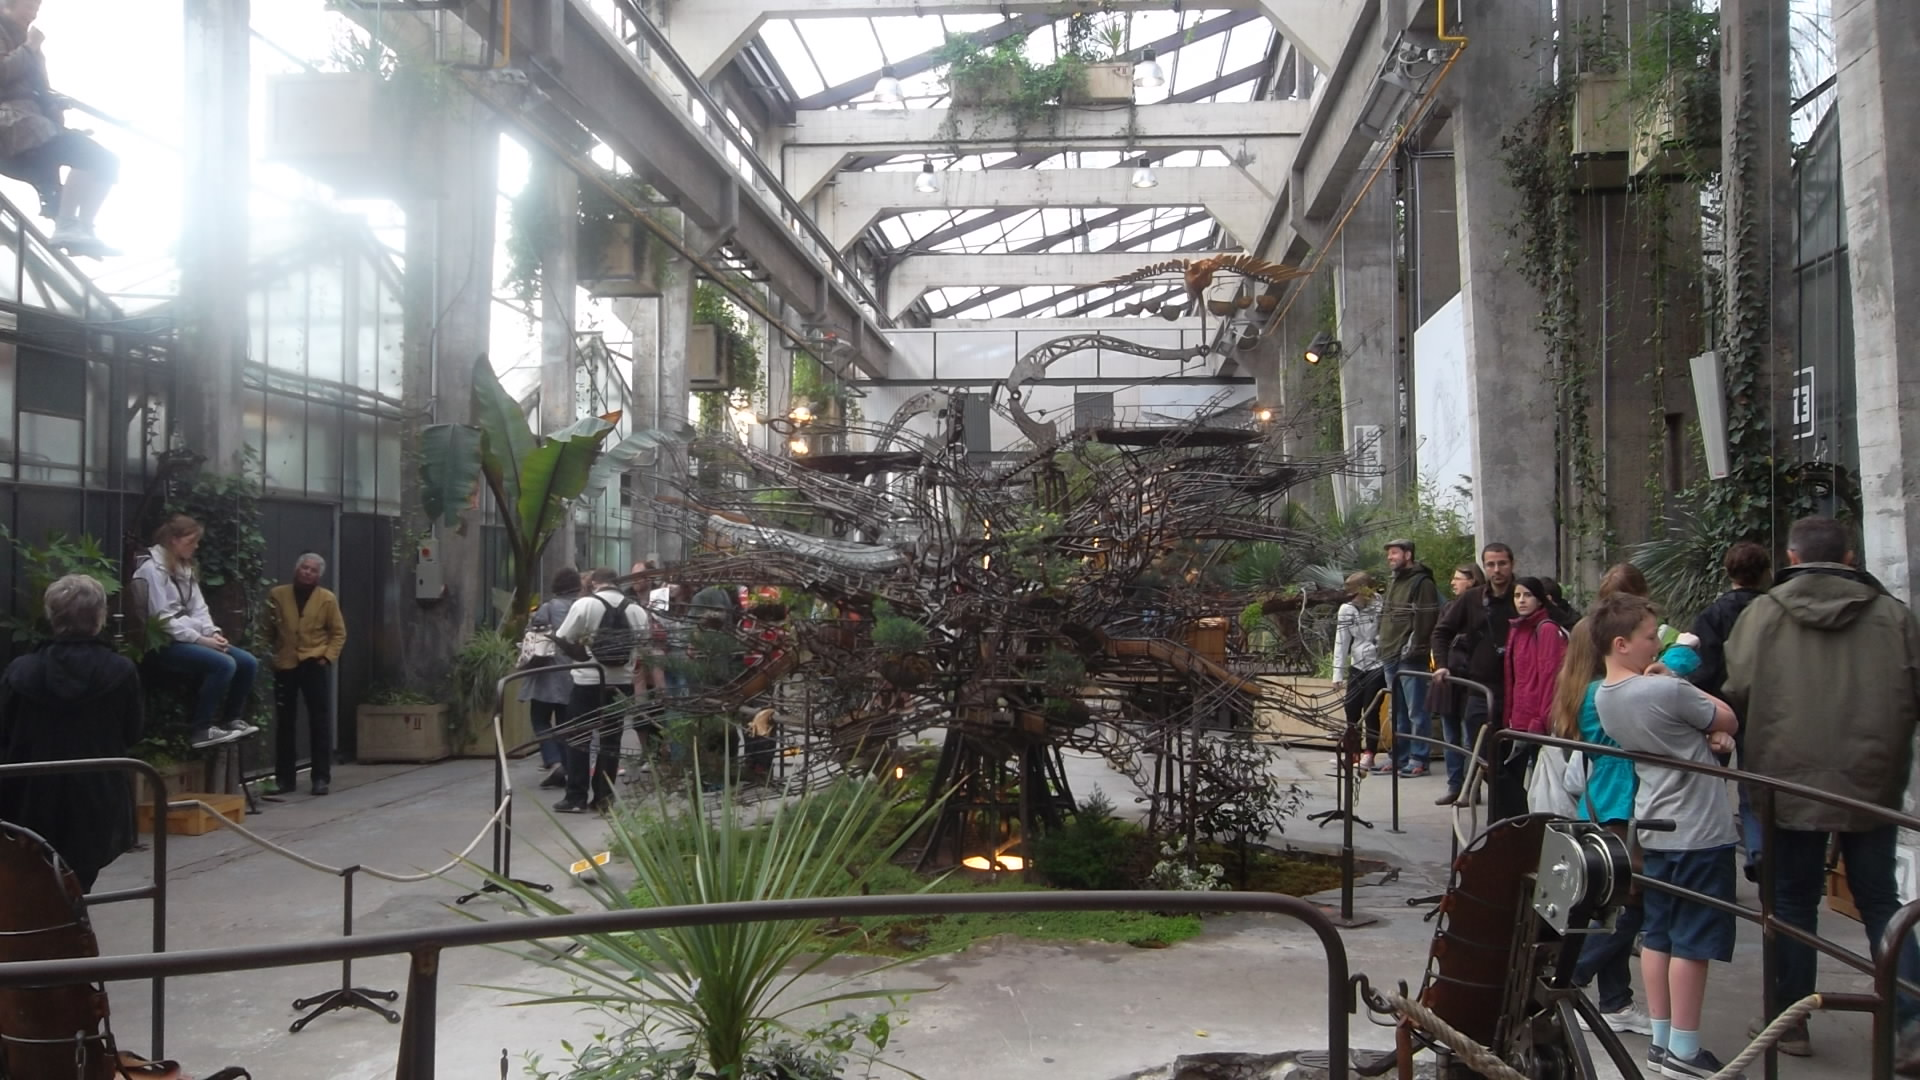 nantes-galerie-des-machines-hall-my13